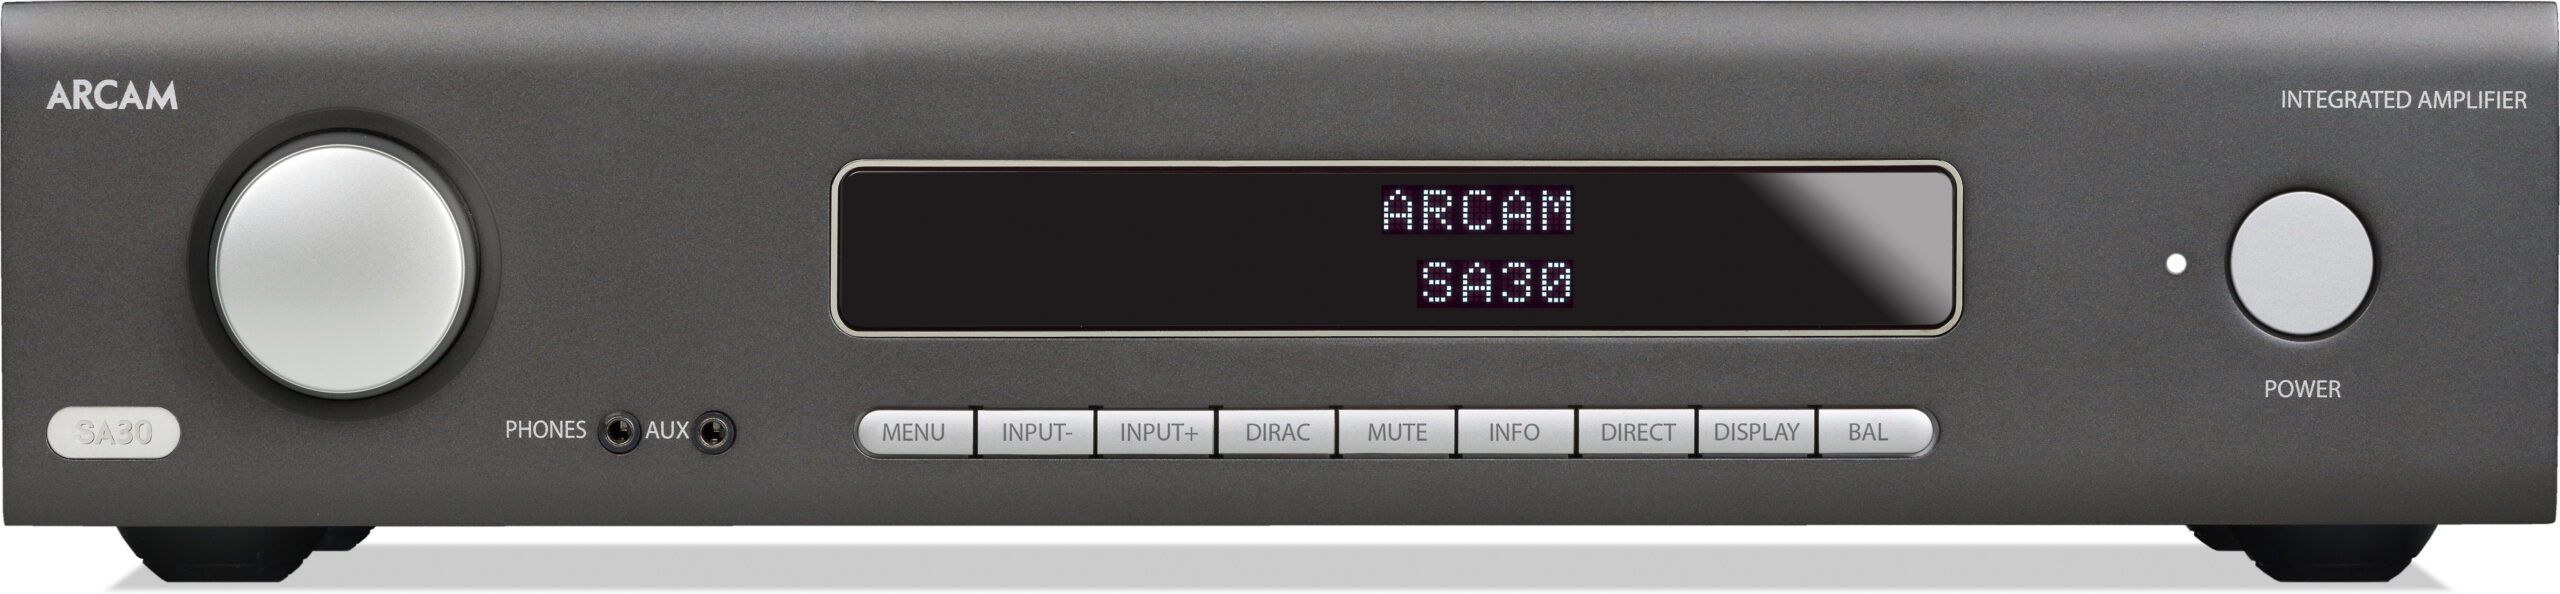 Arcam-SA30-amplifier-front panel